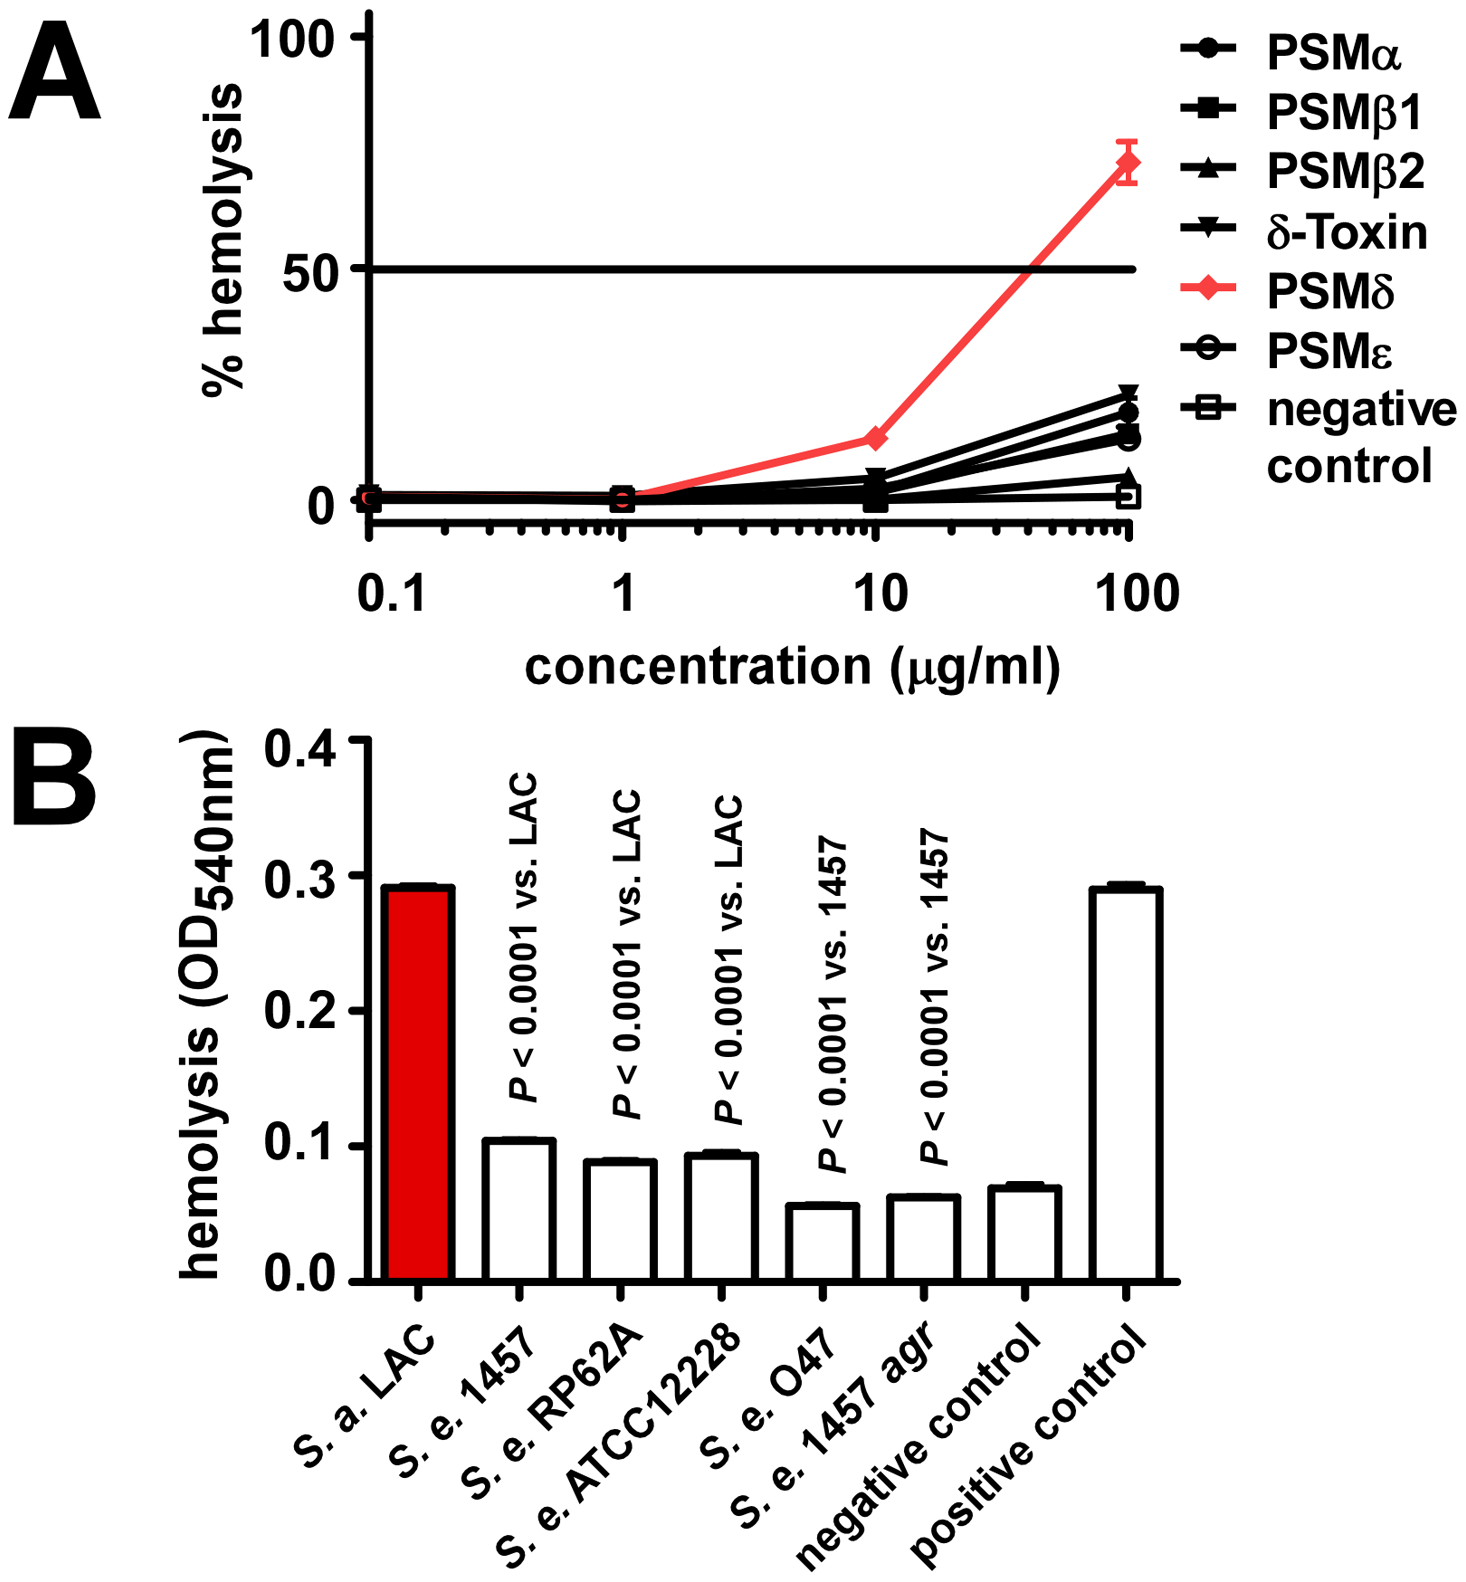 Hemolysis by <i>S. epidermidis</i> culture filtrates and PSM peptides.